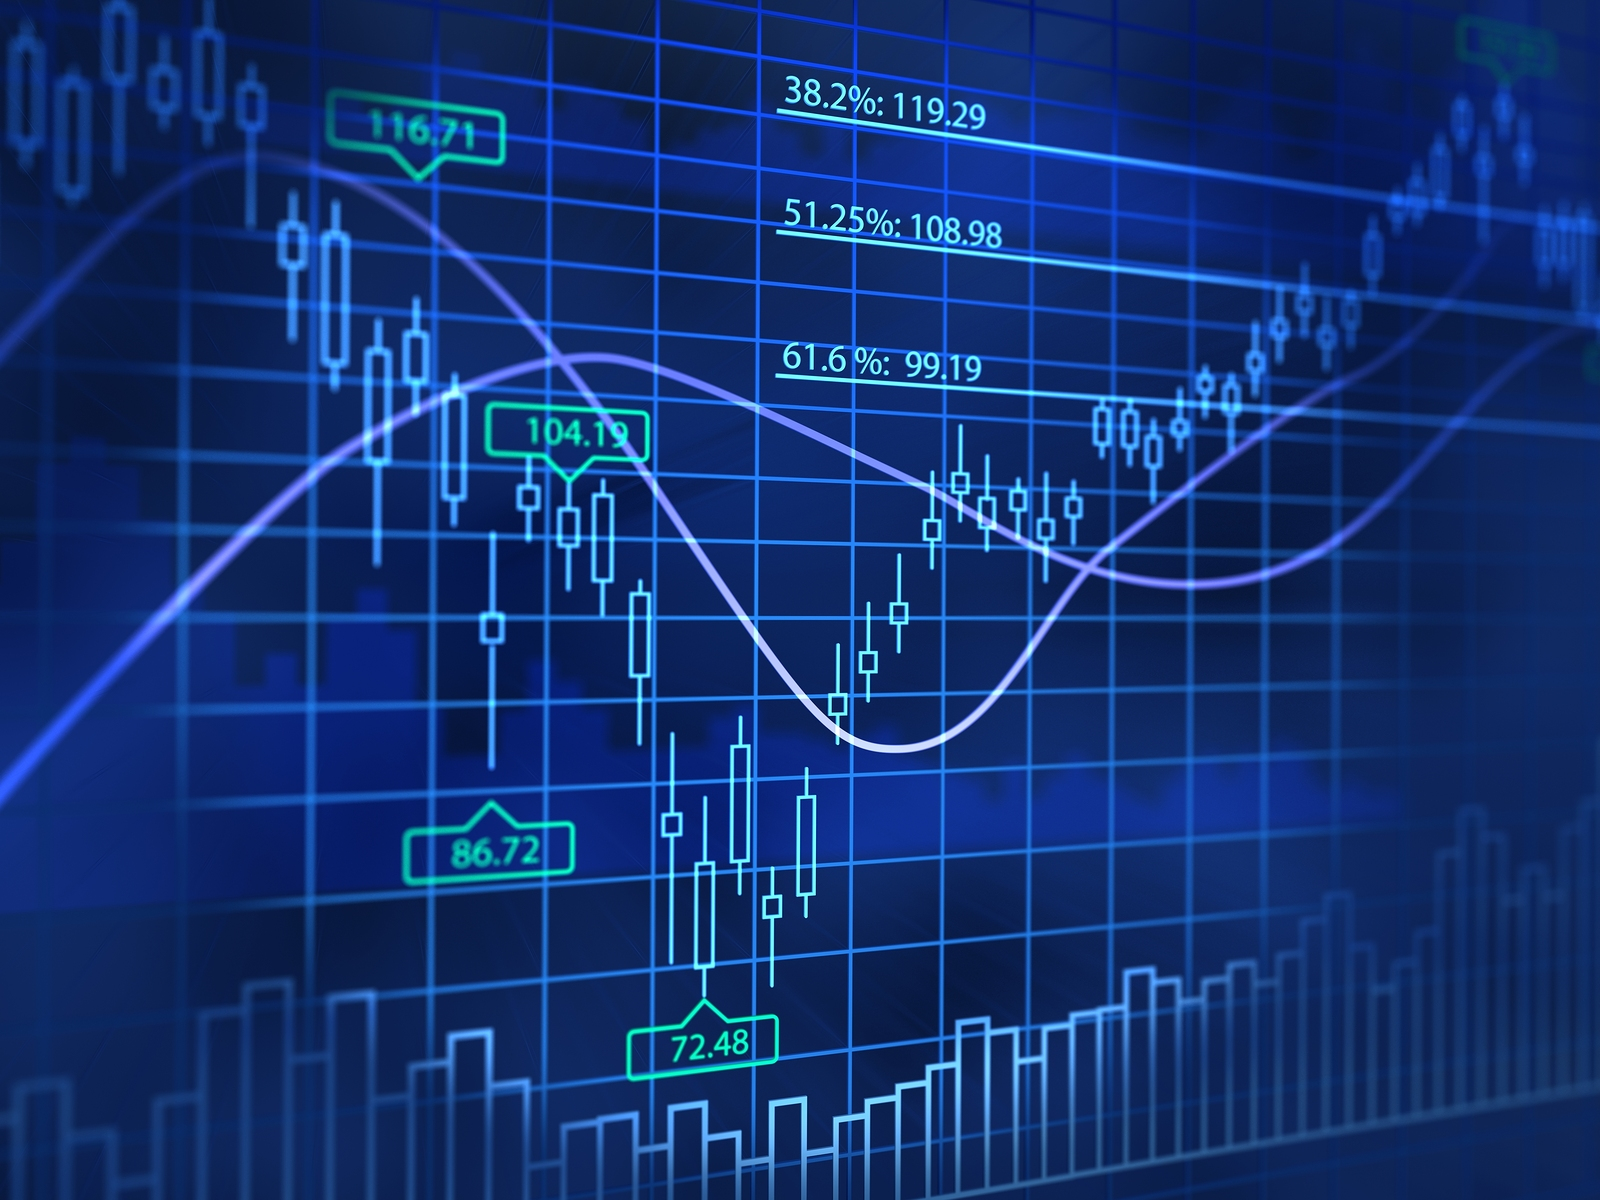 60 seconds binary options candlestick signals